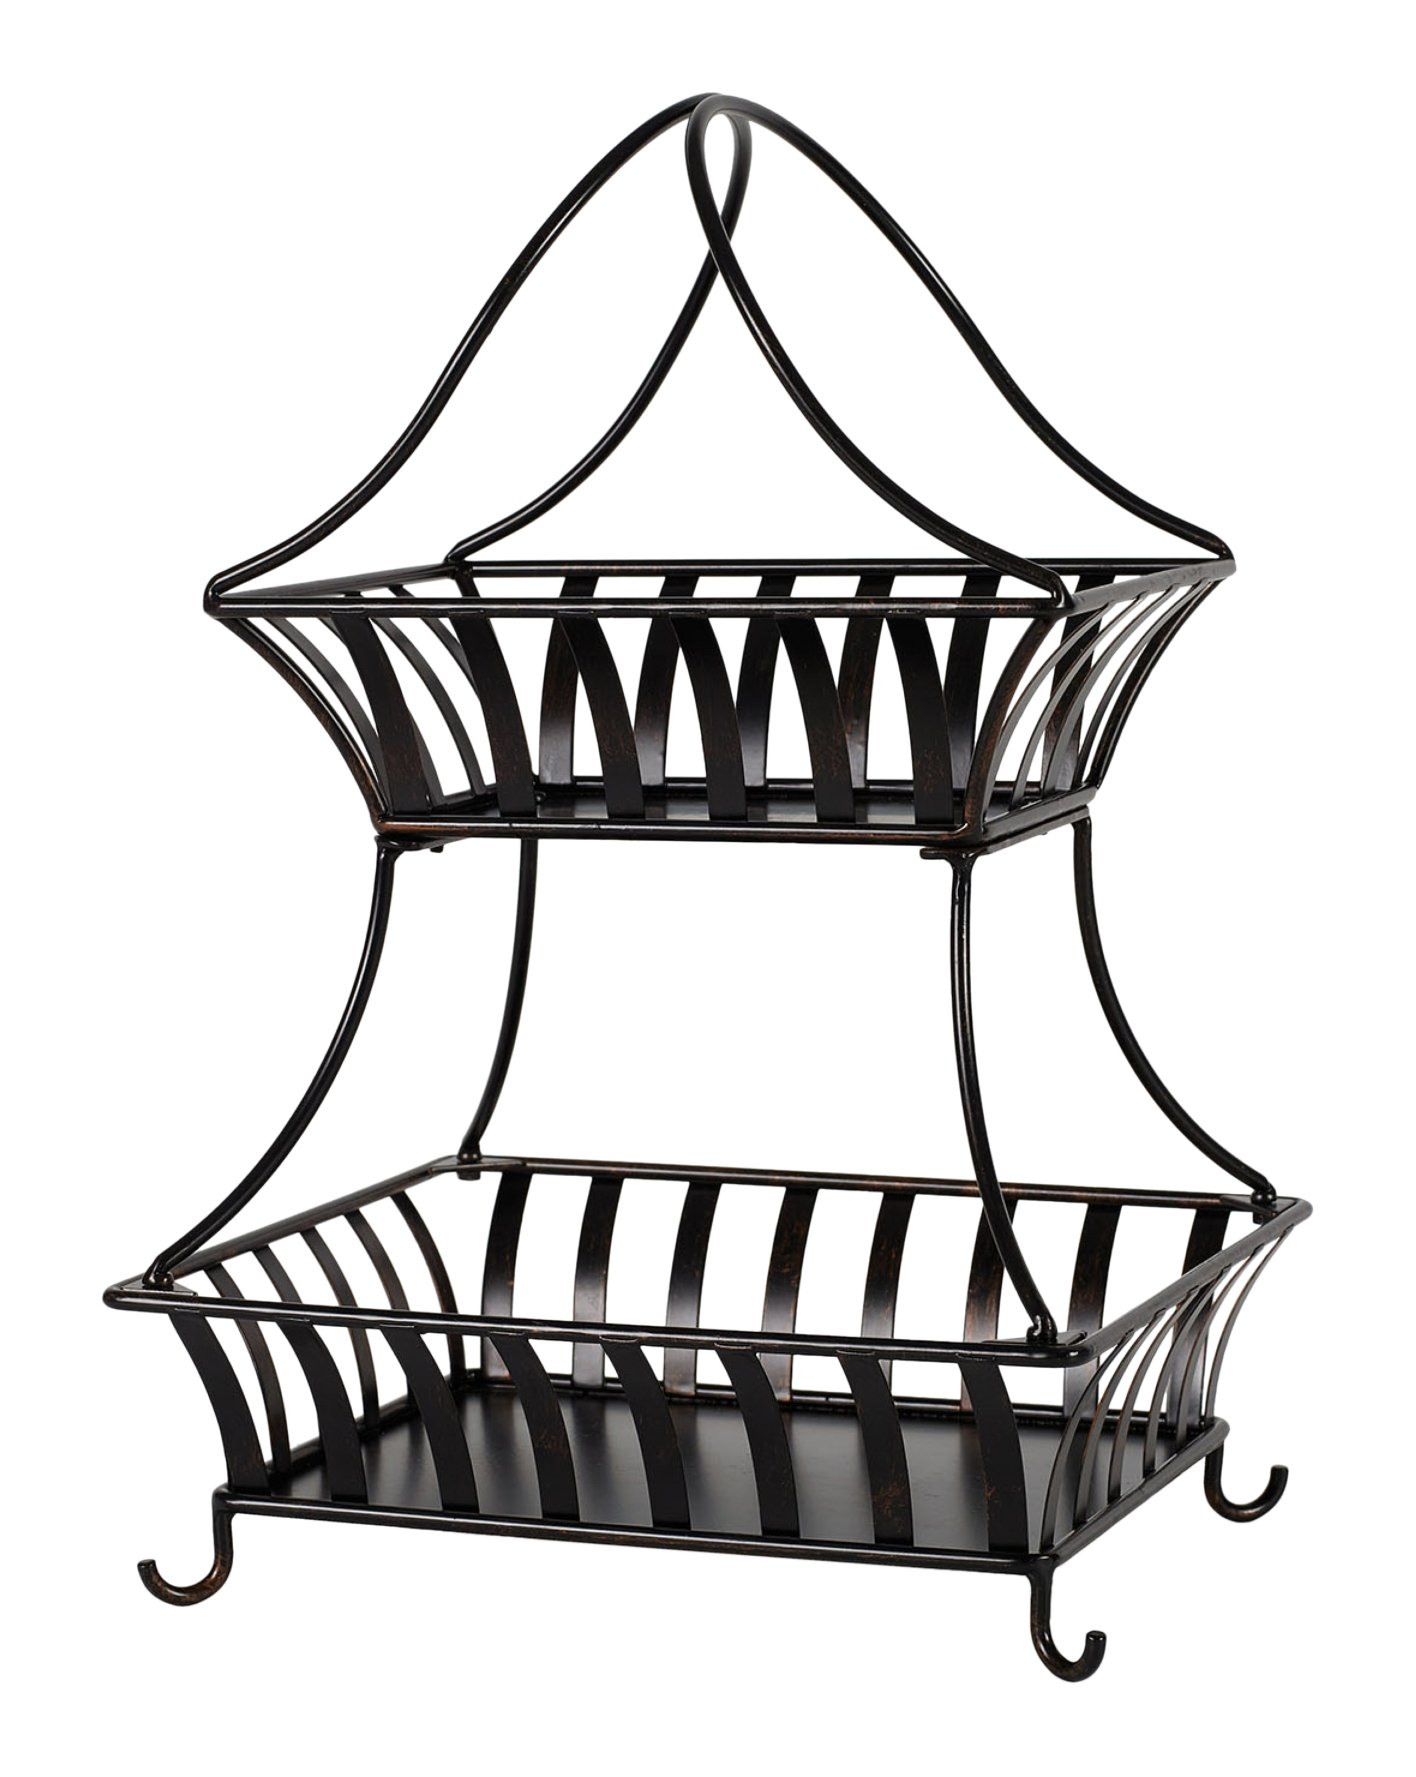 Gourmet Basics by Mikasa 5164229 2-Tier Metal Fruit Storage Basket Bristol